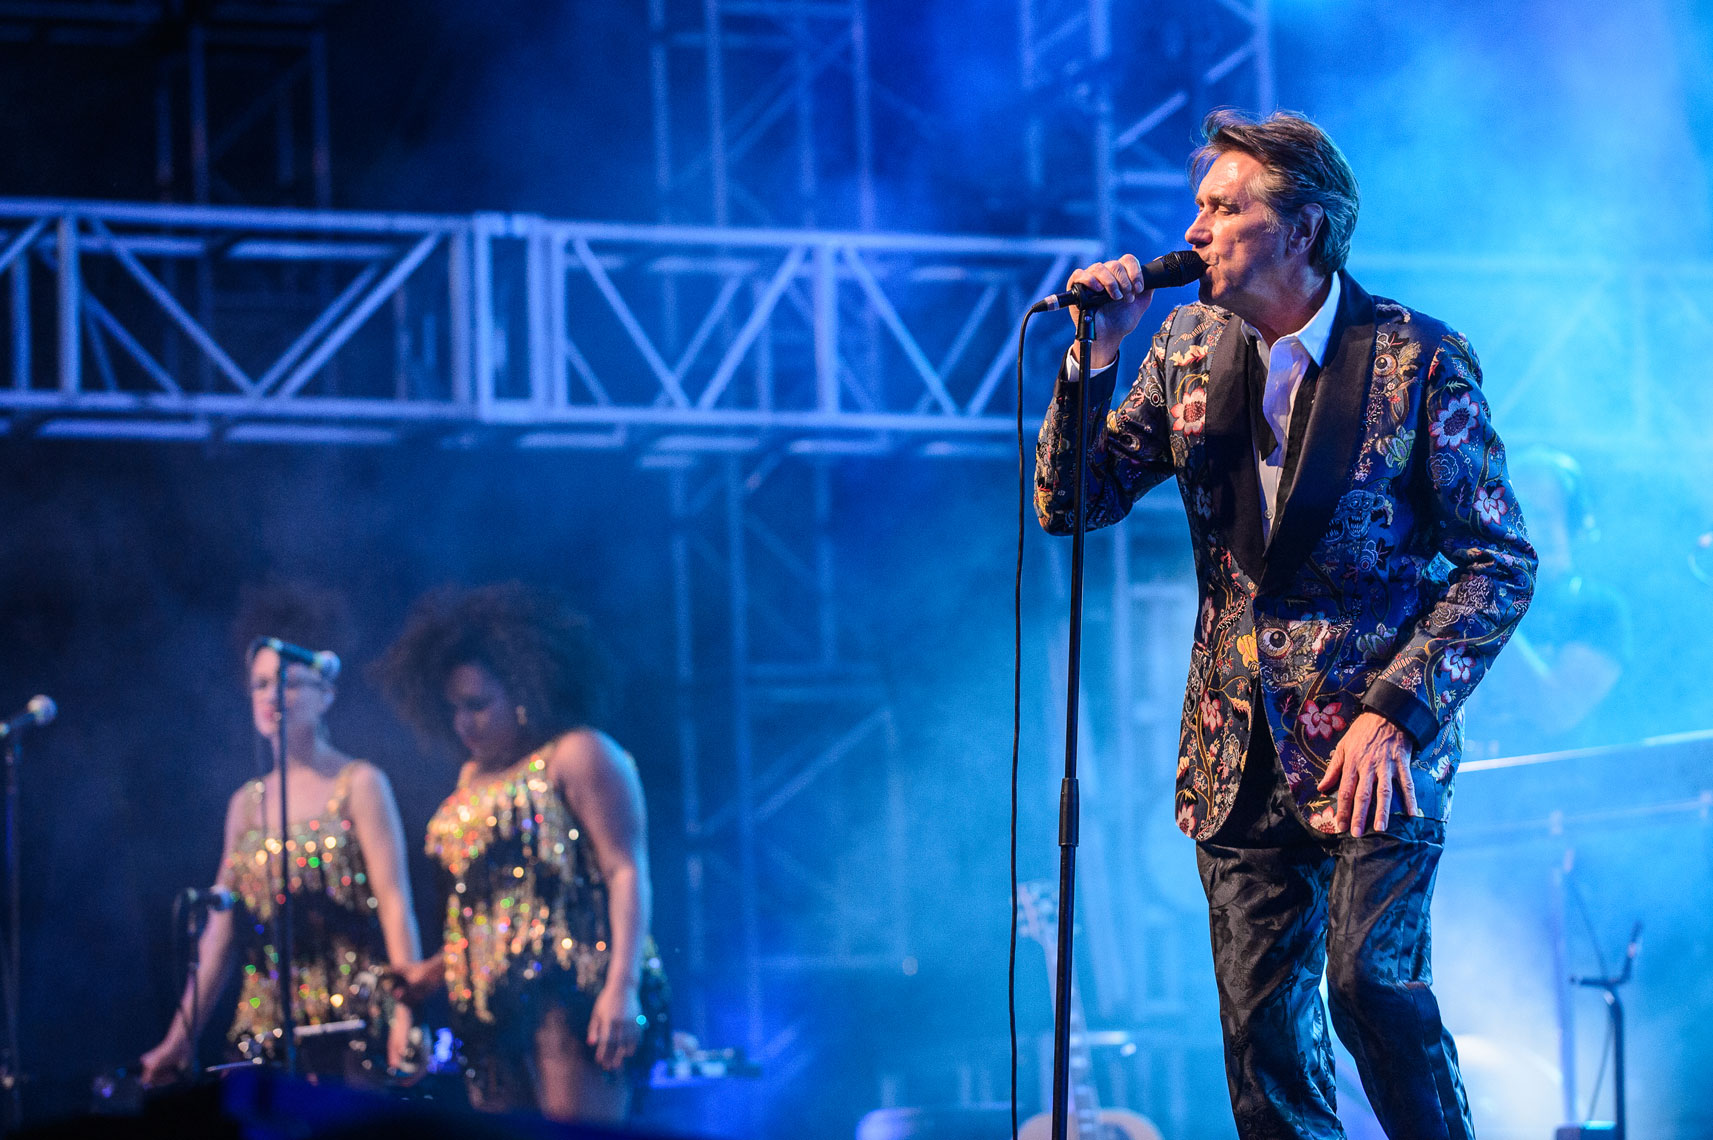 Bryan Ferry at Coachella 2014